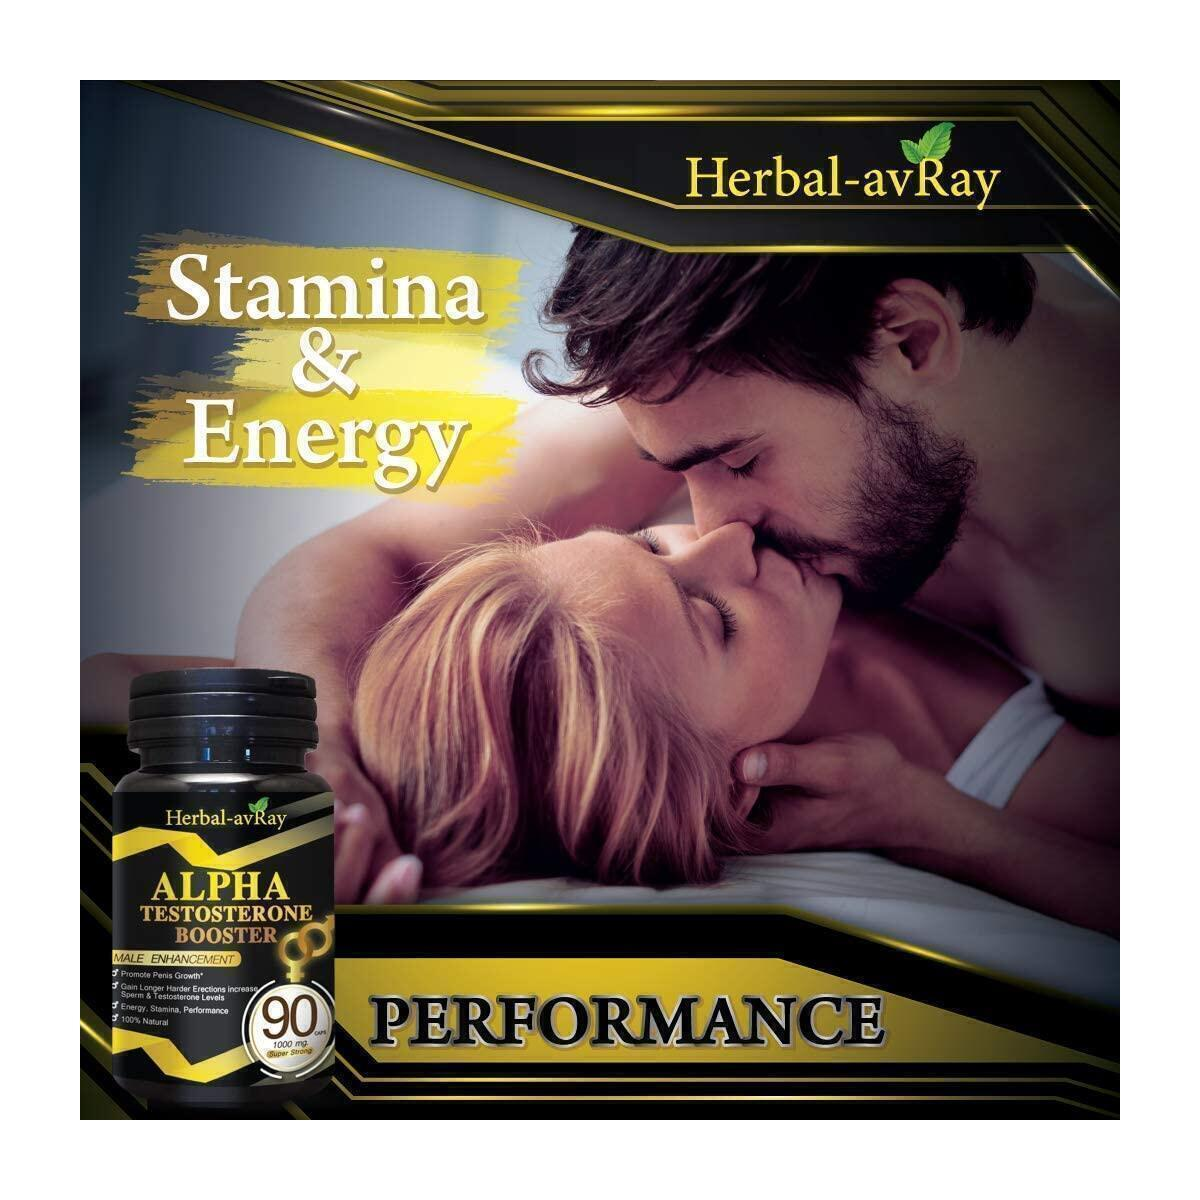 ALPHA Male Enlargment Pills For Men| Natural Testosterone Booster For Men| Stamina Fuel For Men| Male Enhancment Pills For Men Increase Size, Strength, Stamina, Energy| 90 Capsules Performance Booster…